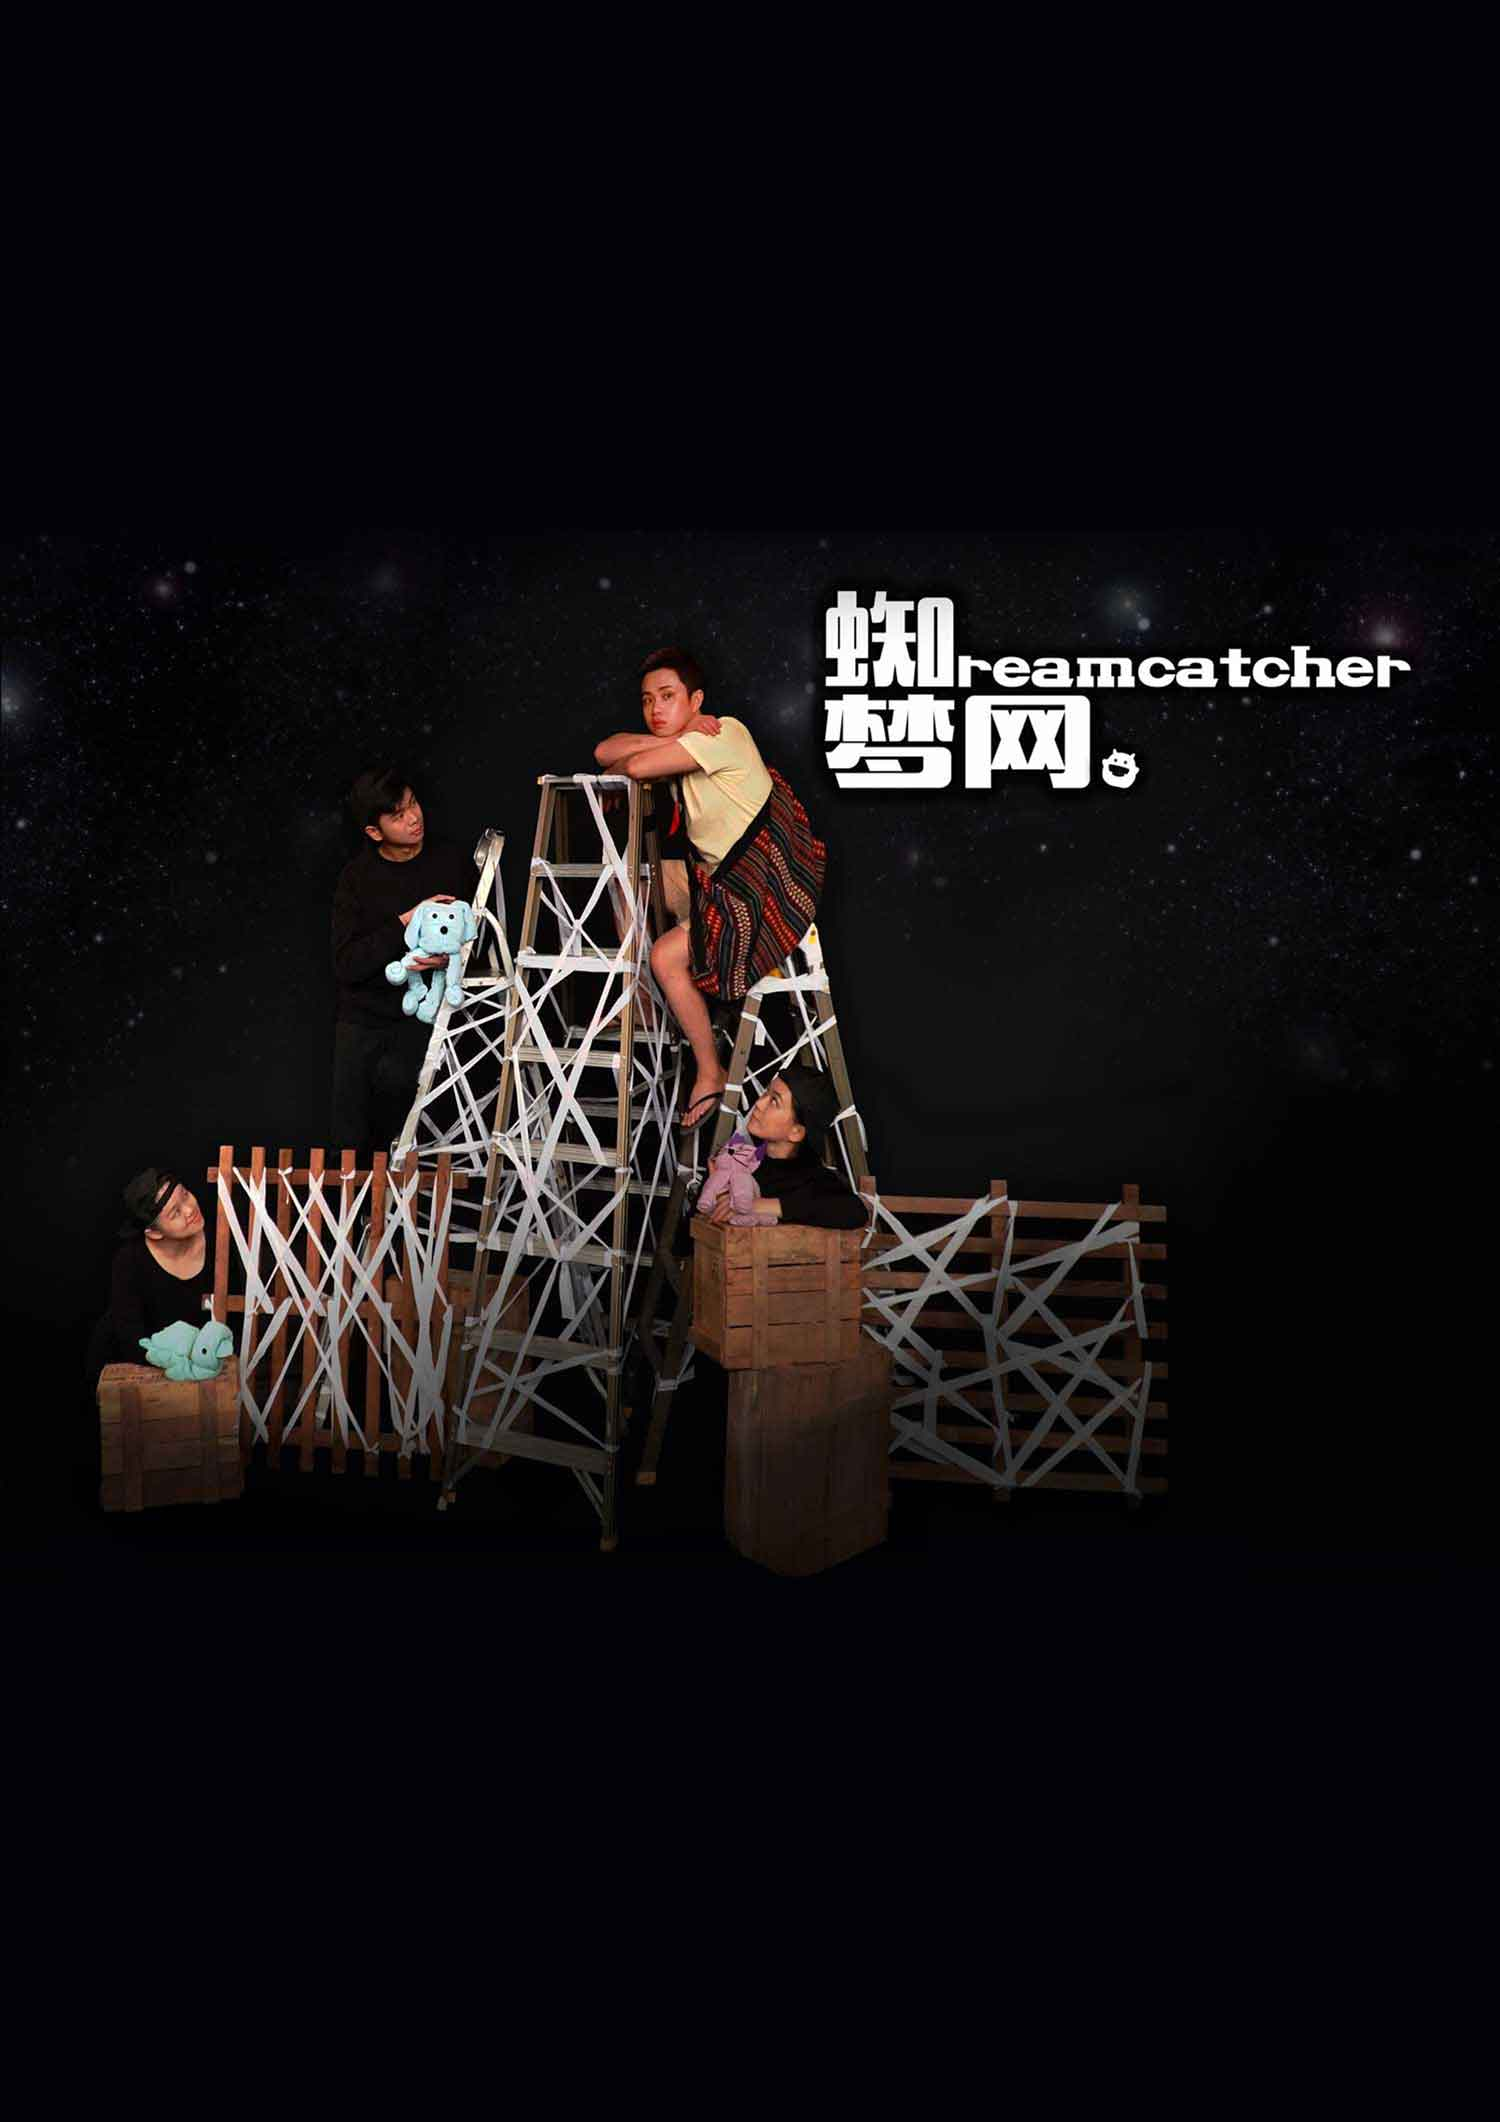 云端儿童戏剧《蜘梦网》Online Children's Theatre 'Dreamcatcher'